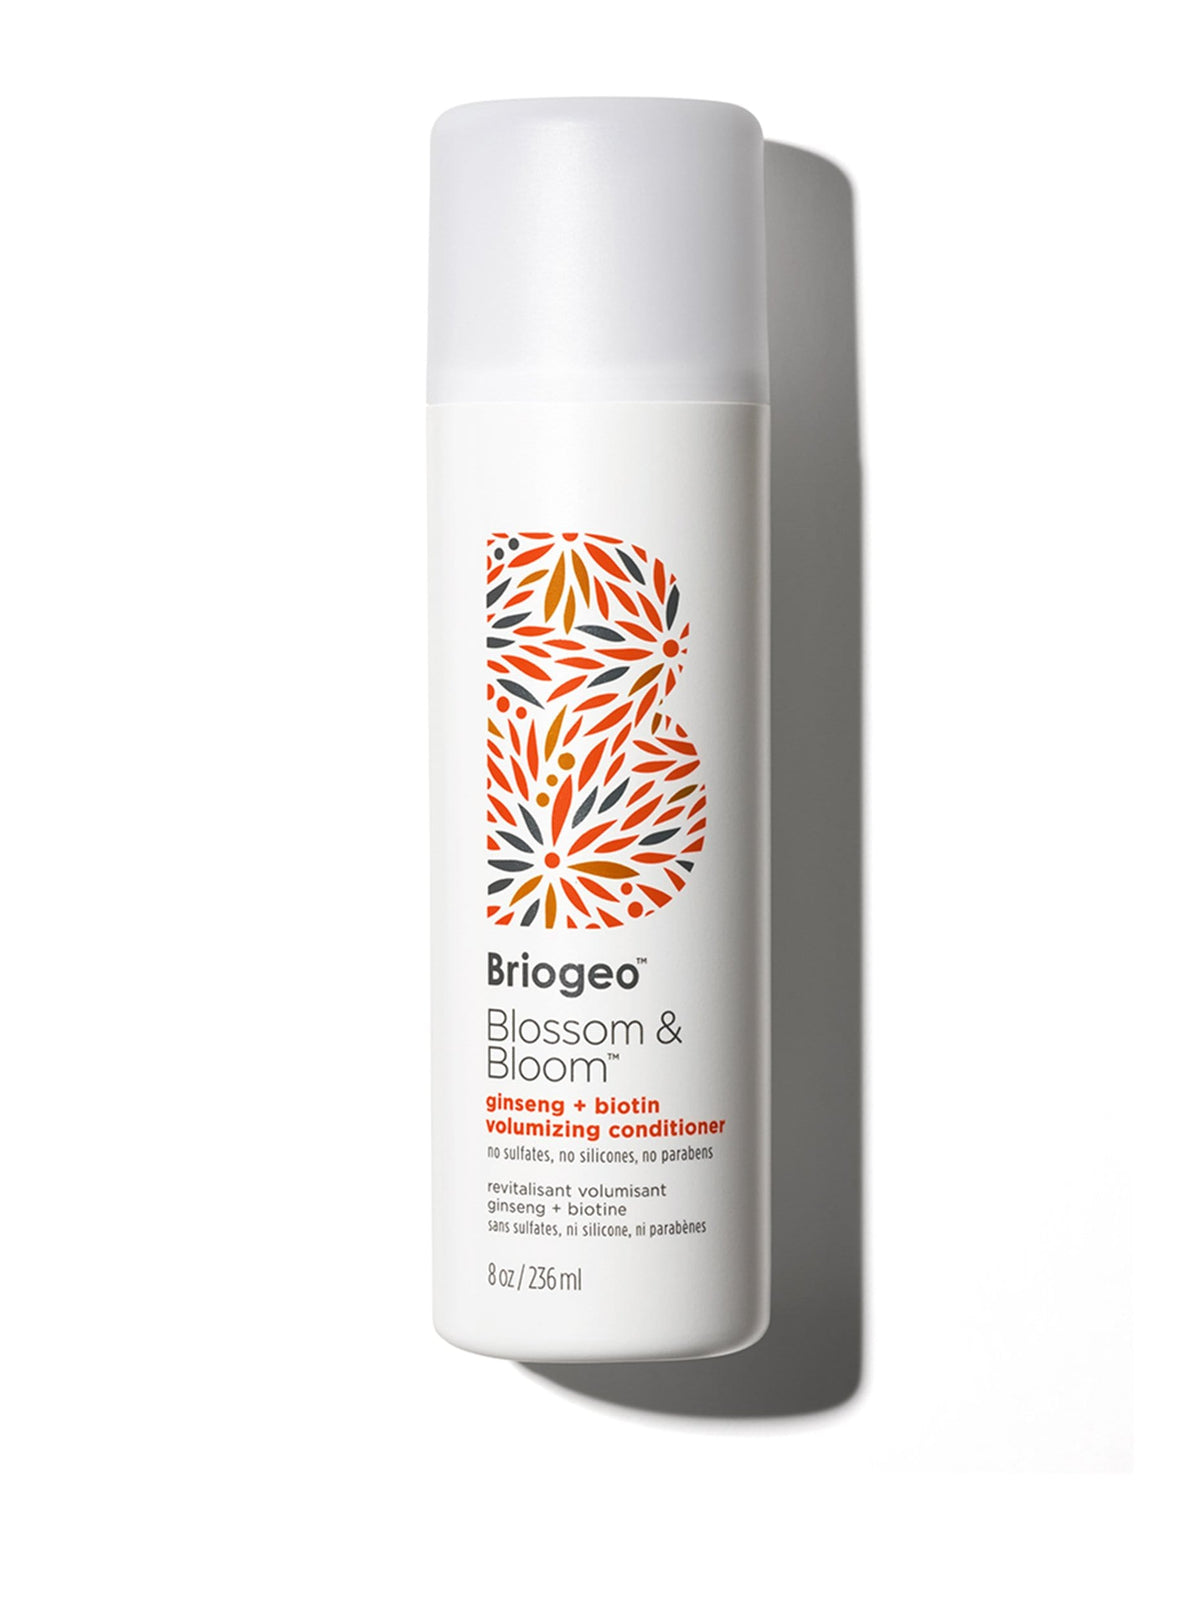 Blossom & Bloom Ginseng + Biotin Volumizing Conditioner